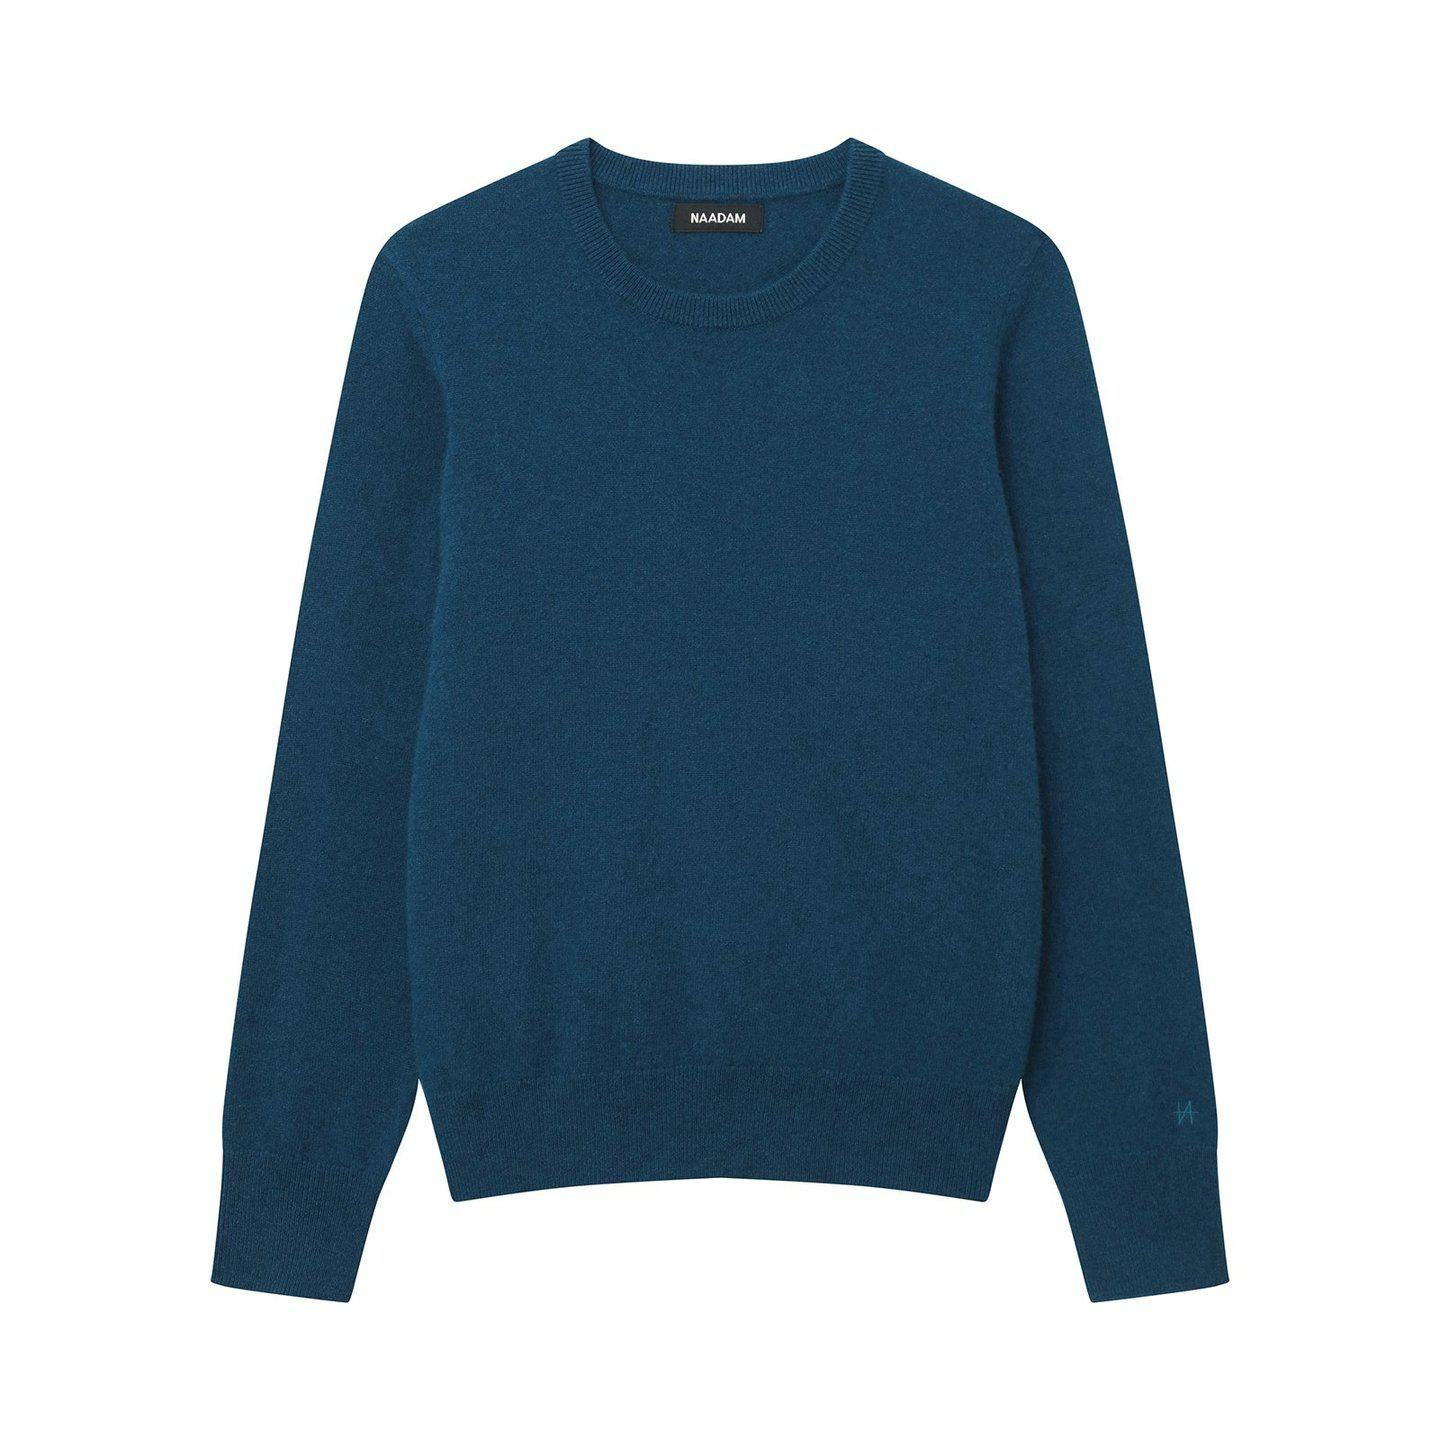 The Essential Cashmere Sweater